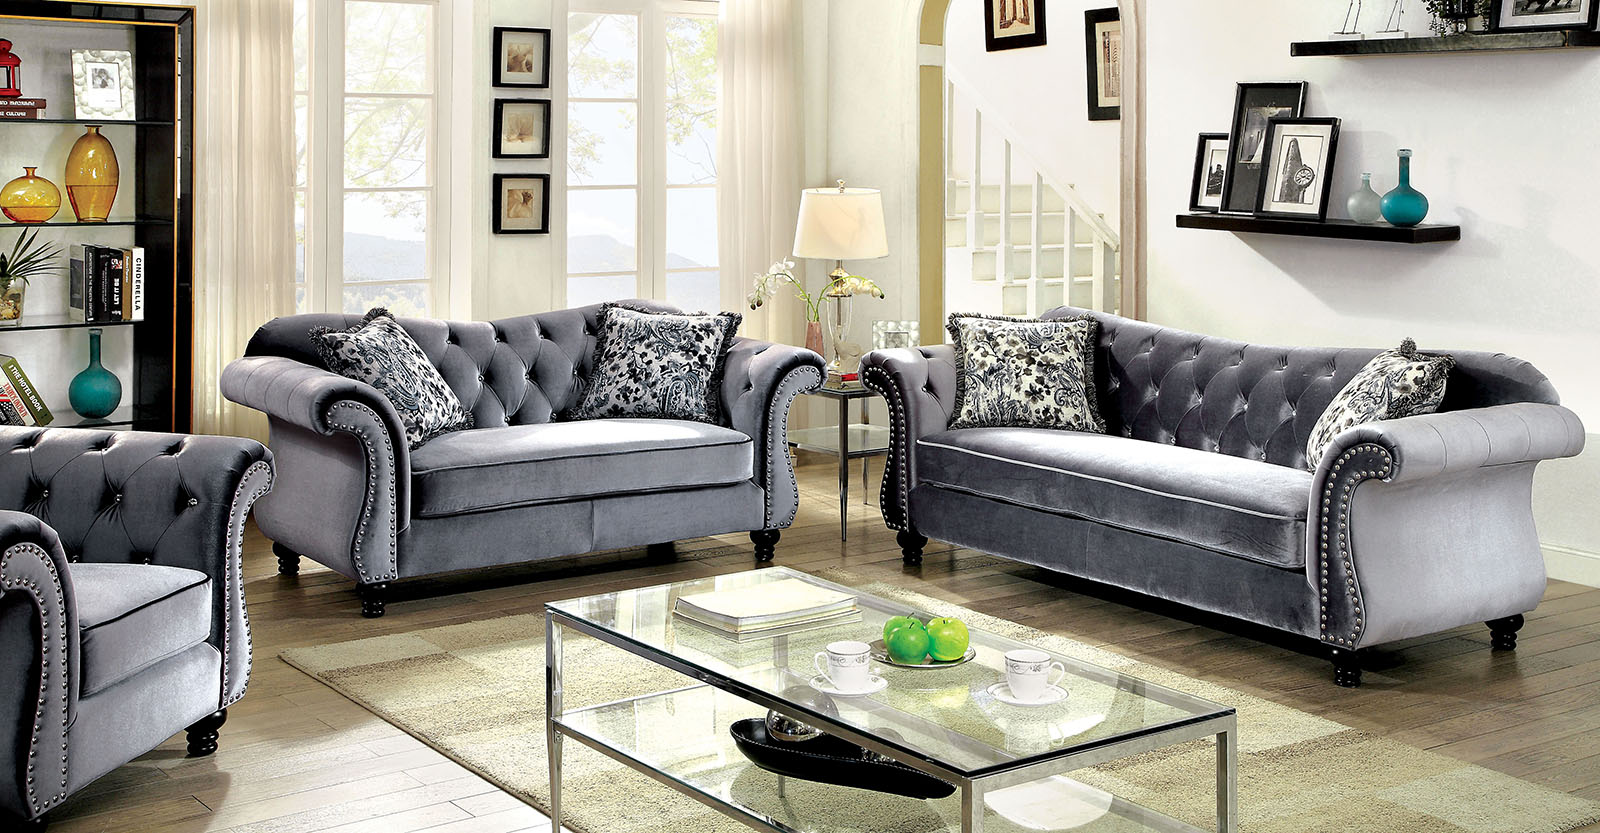 Luxurious Jolanda Sofa Set Sofa And Loveseat Grey Traditional Living Room  Furniture 2pc Set Button Tufted